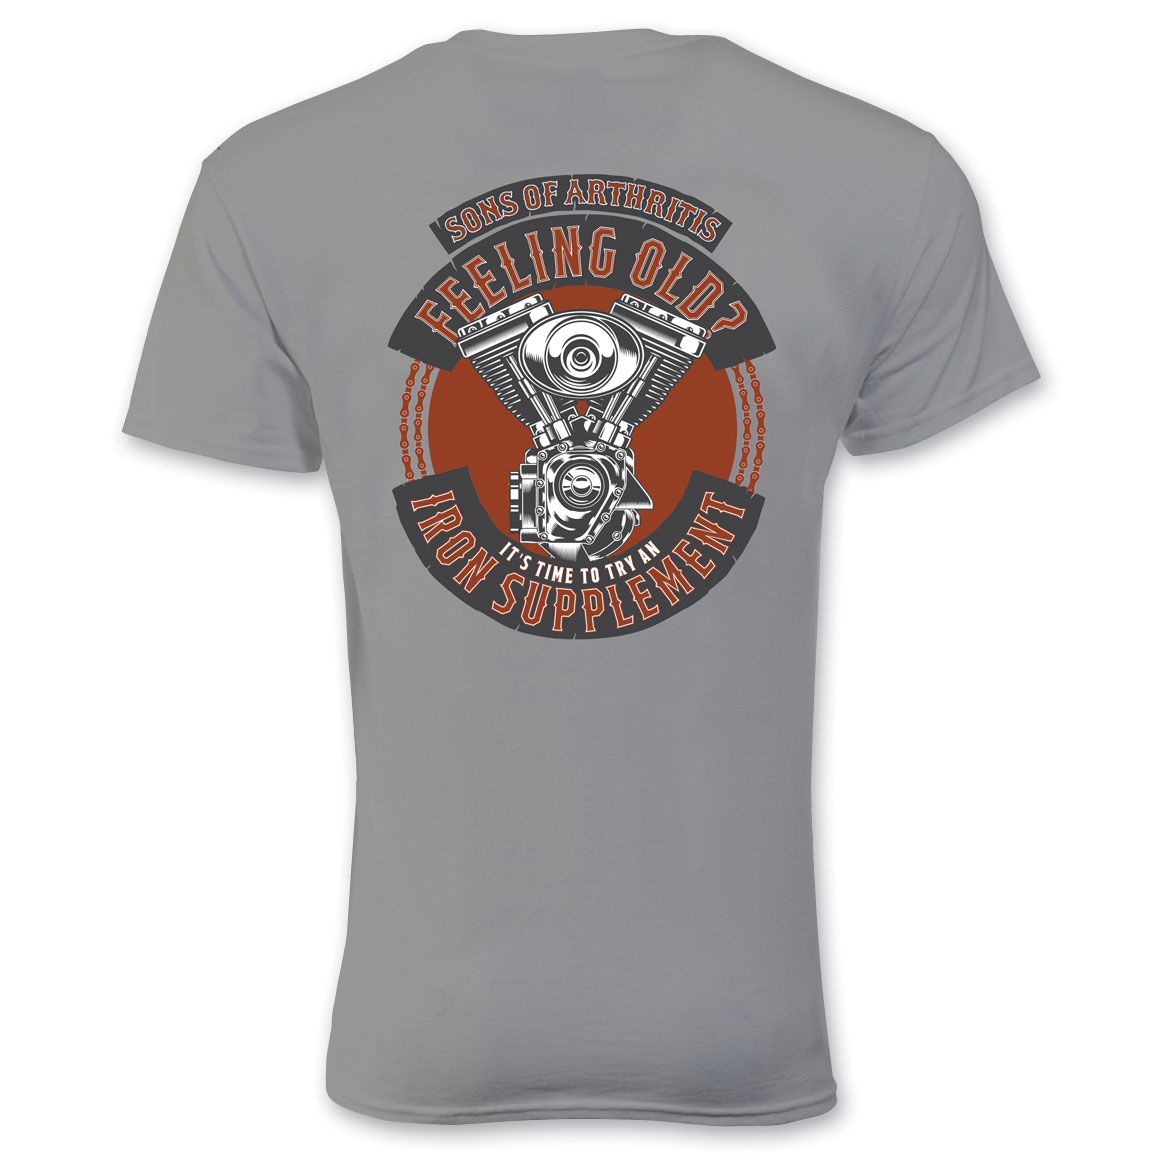 Sons of Arthritis Men's Iron Supplement Gray T-Shirt